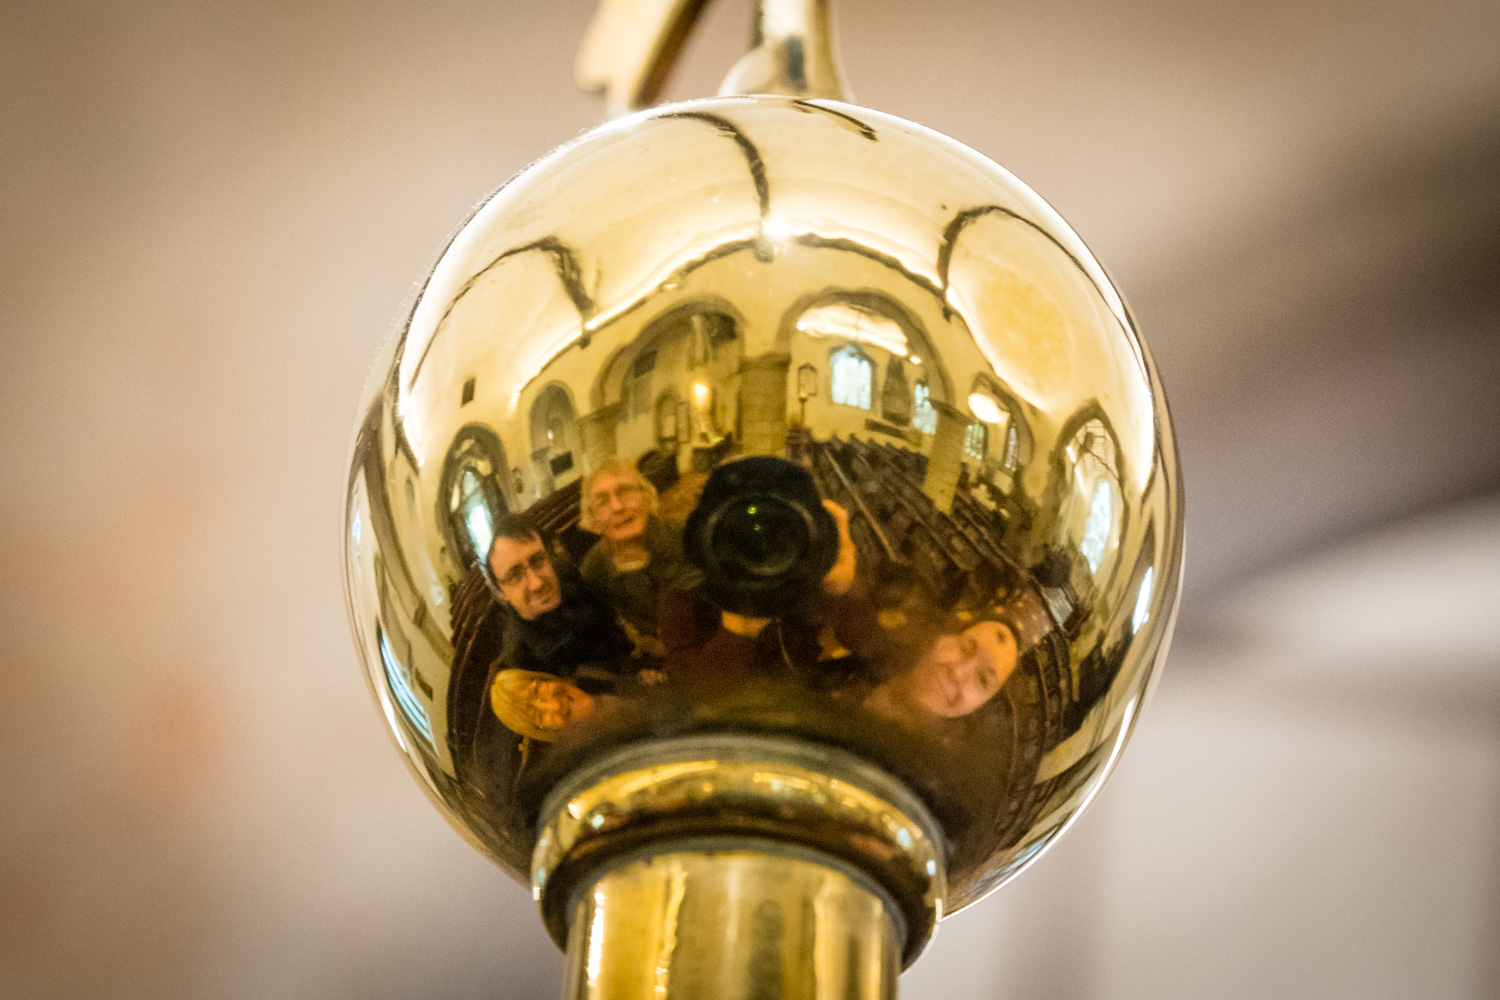 """Visiting the church where it all happened. This """"selfie in the brass sphere"""" was one of my favourite photos to show people during photo lessons around the Chateau in Lake Louise. We used the brass sphere on top of the fancy luggage trolleys scattered around the hotel lobby. It is an interesting way of photographing the whole family."""